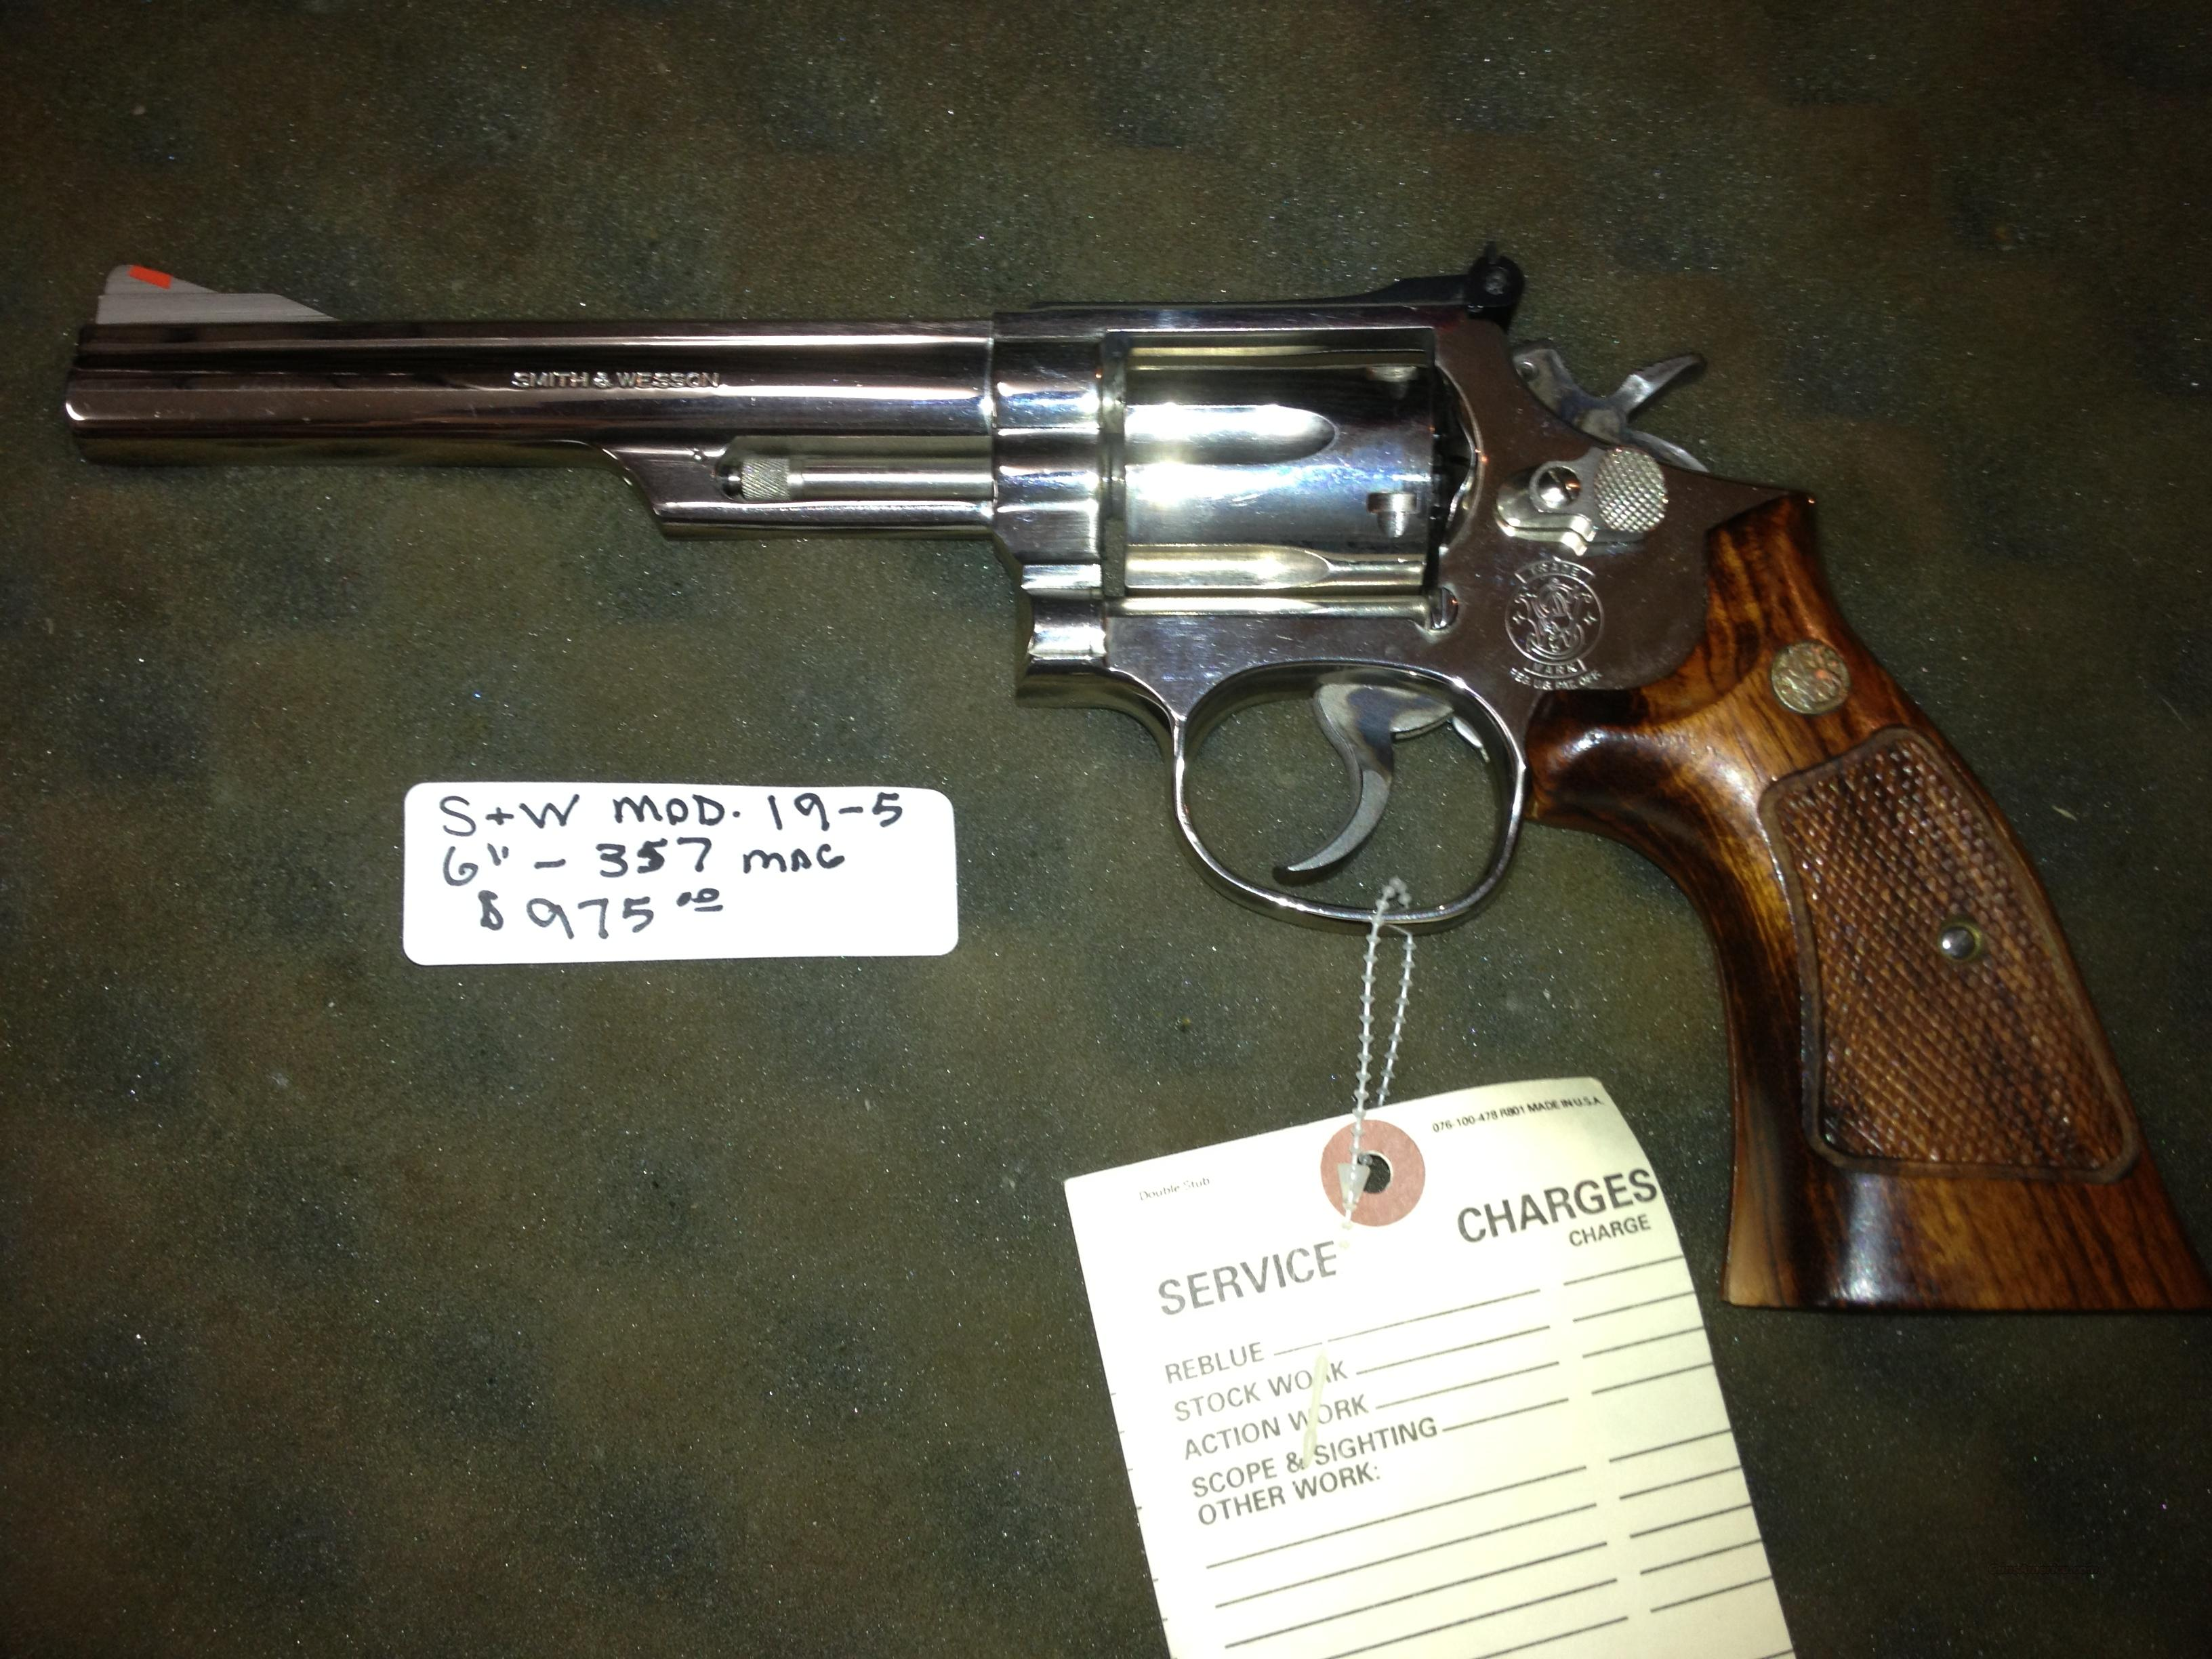 Smith & Wesson mod 19-5, 357  Guns > Pistols > Smith & Wesson Revolvers > Full Frame Revolver